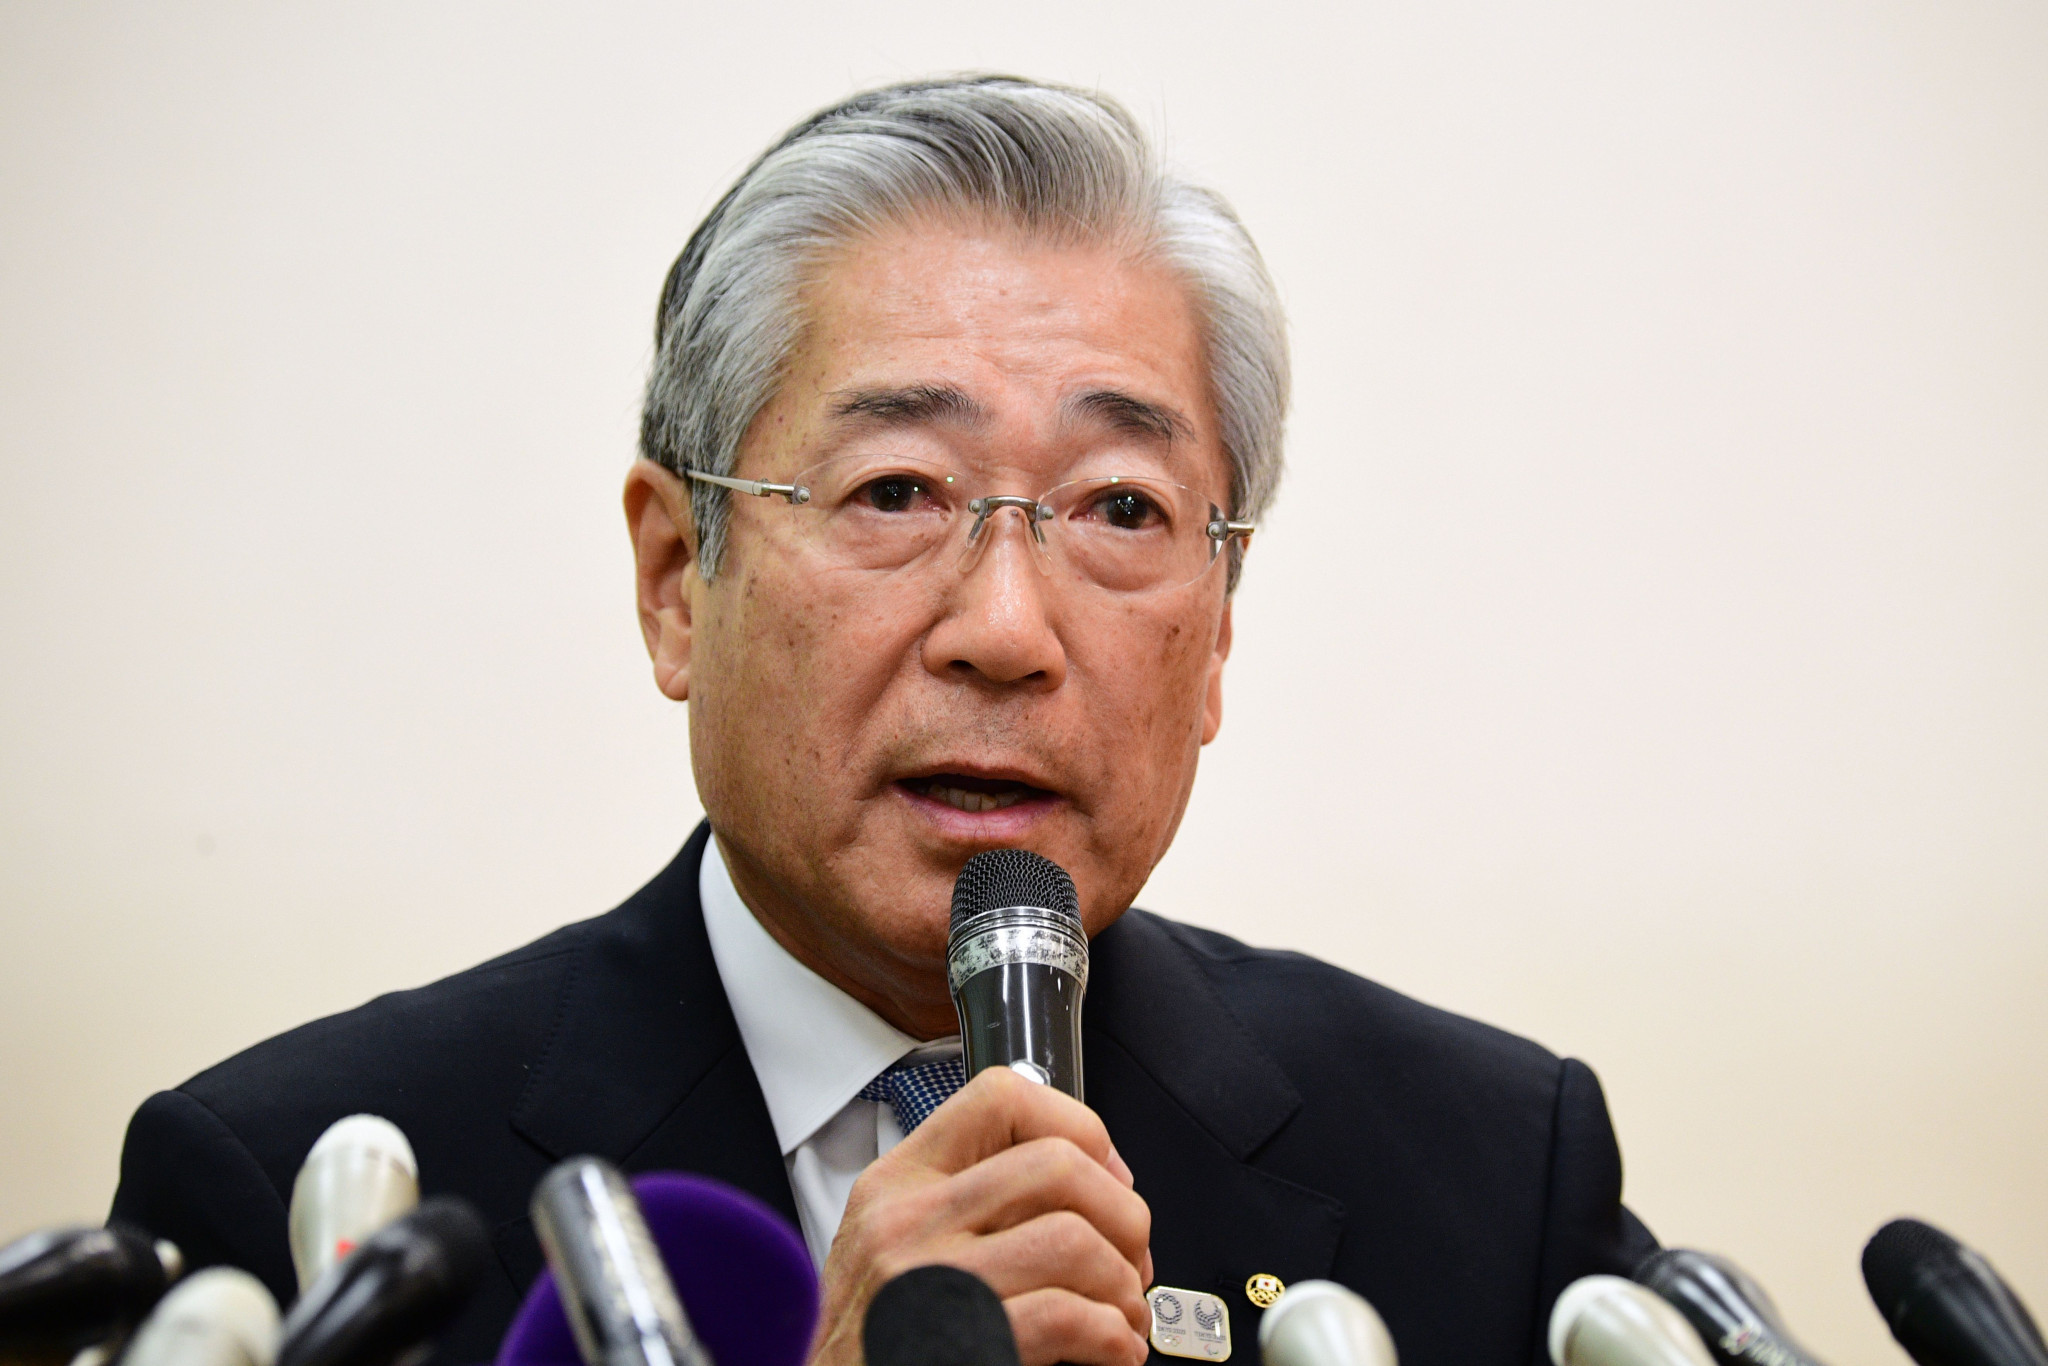 Takeda again denies corruption and apologises for impact on Tokyo 2020 preparations